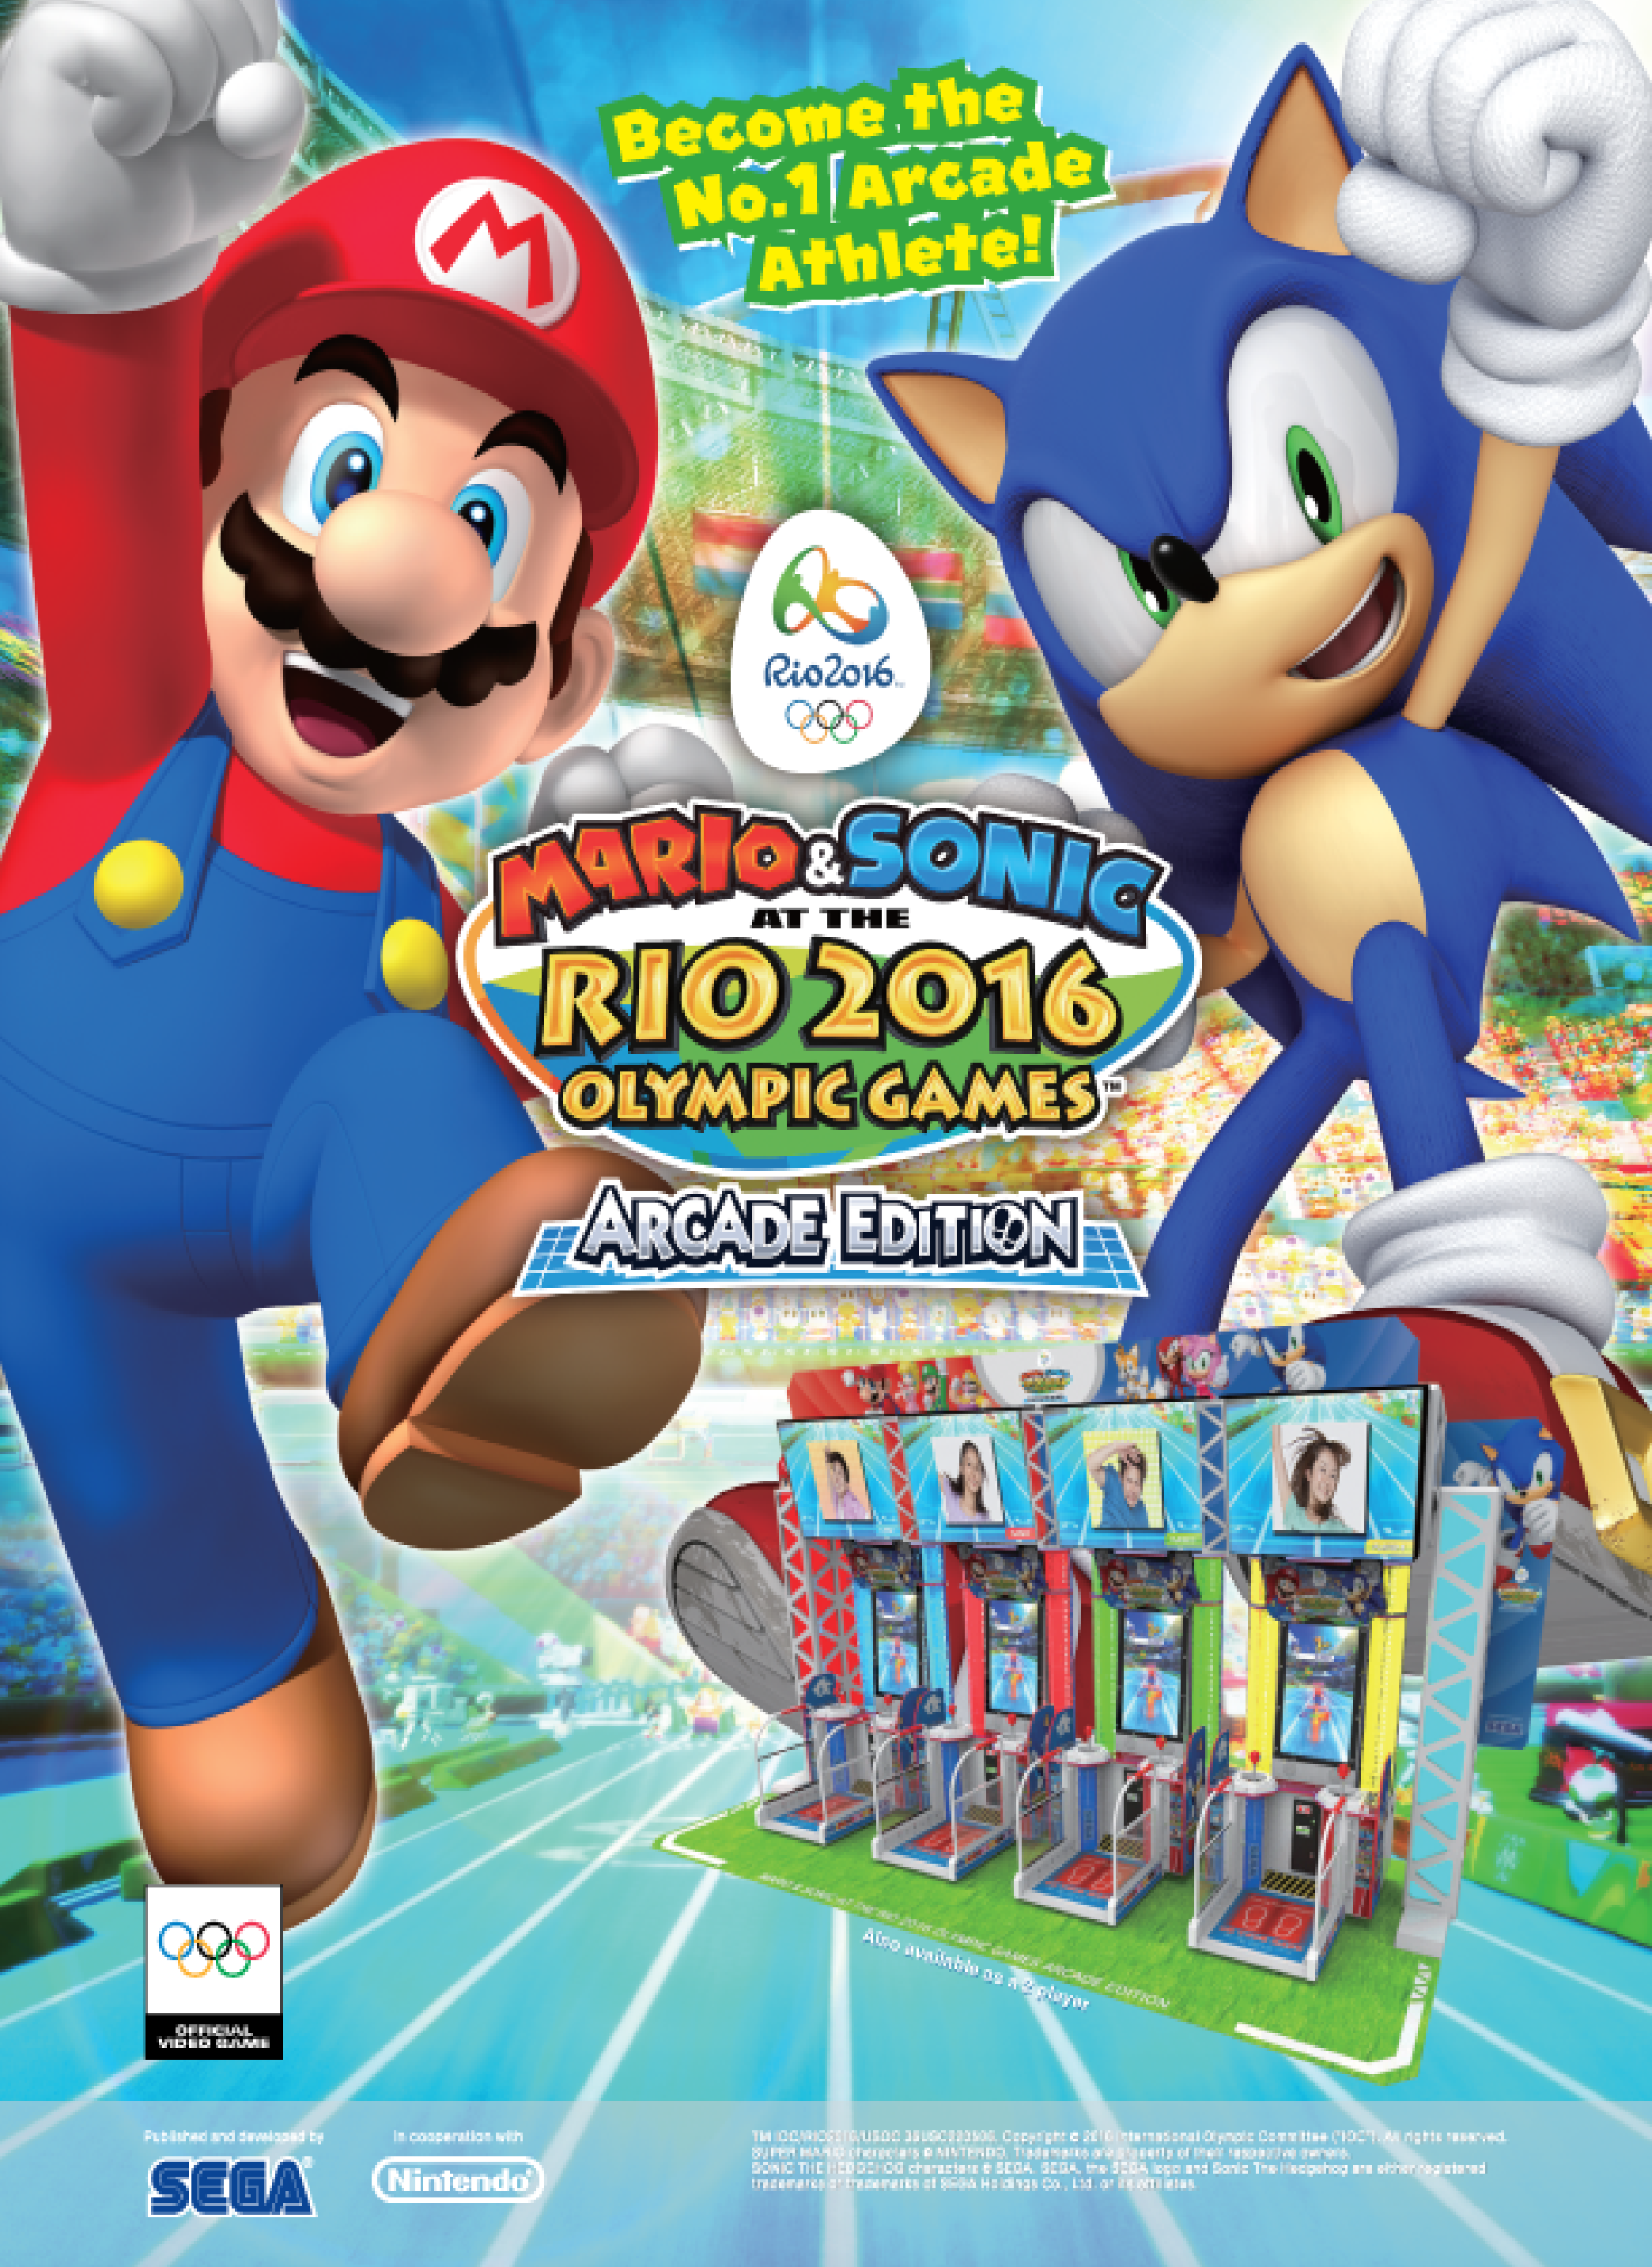 Mario & Sonic at the Rio 2016 Olympic Games arcade game